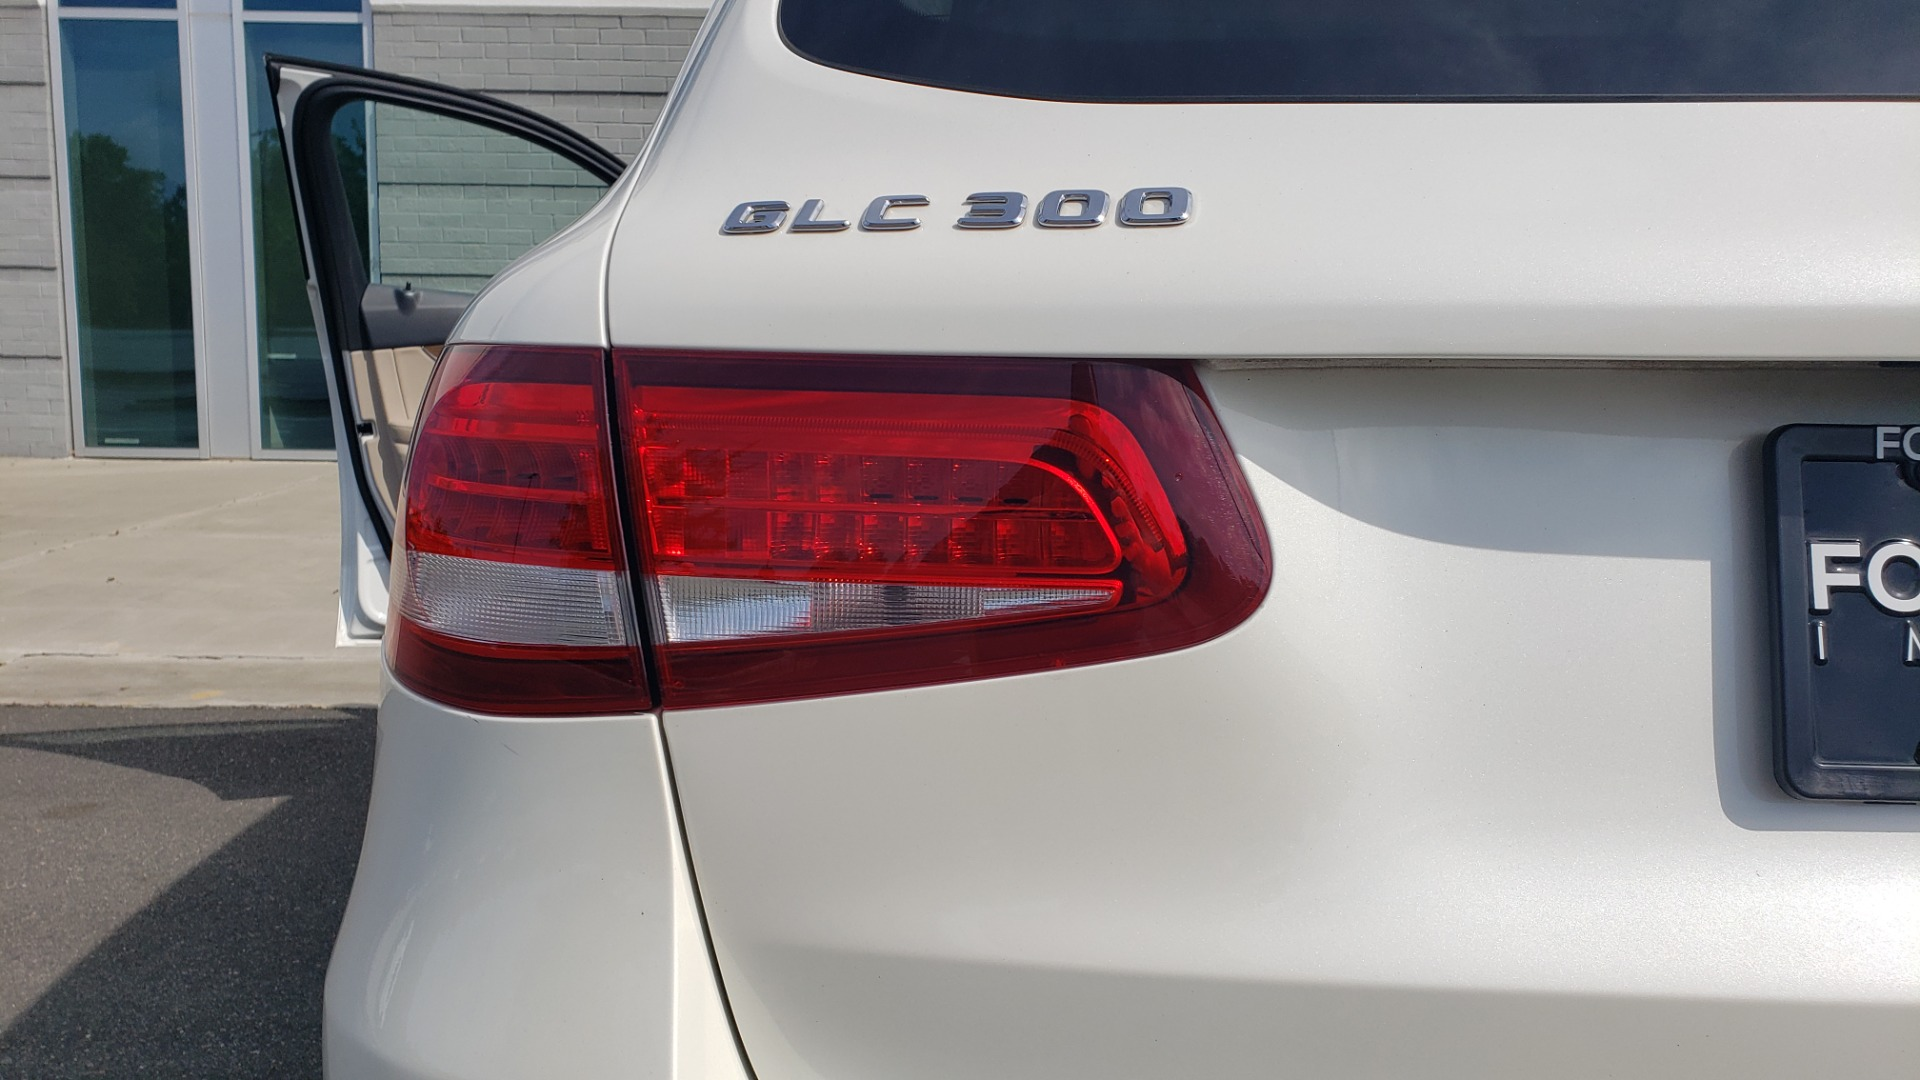 Used 2018 Mercedes-Benz GLC 300 4MATIC / PREM PKG / PANO-ROOF / APPLE / REARVIEW for sale $33,397 at Formula Imports in Charlotte NC 28227 29